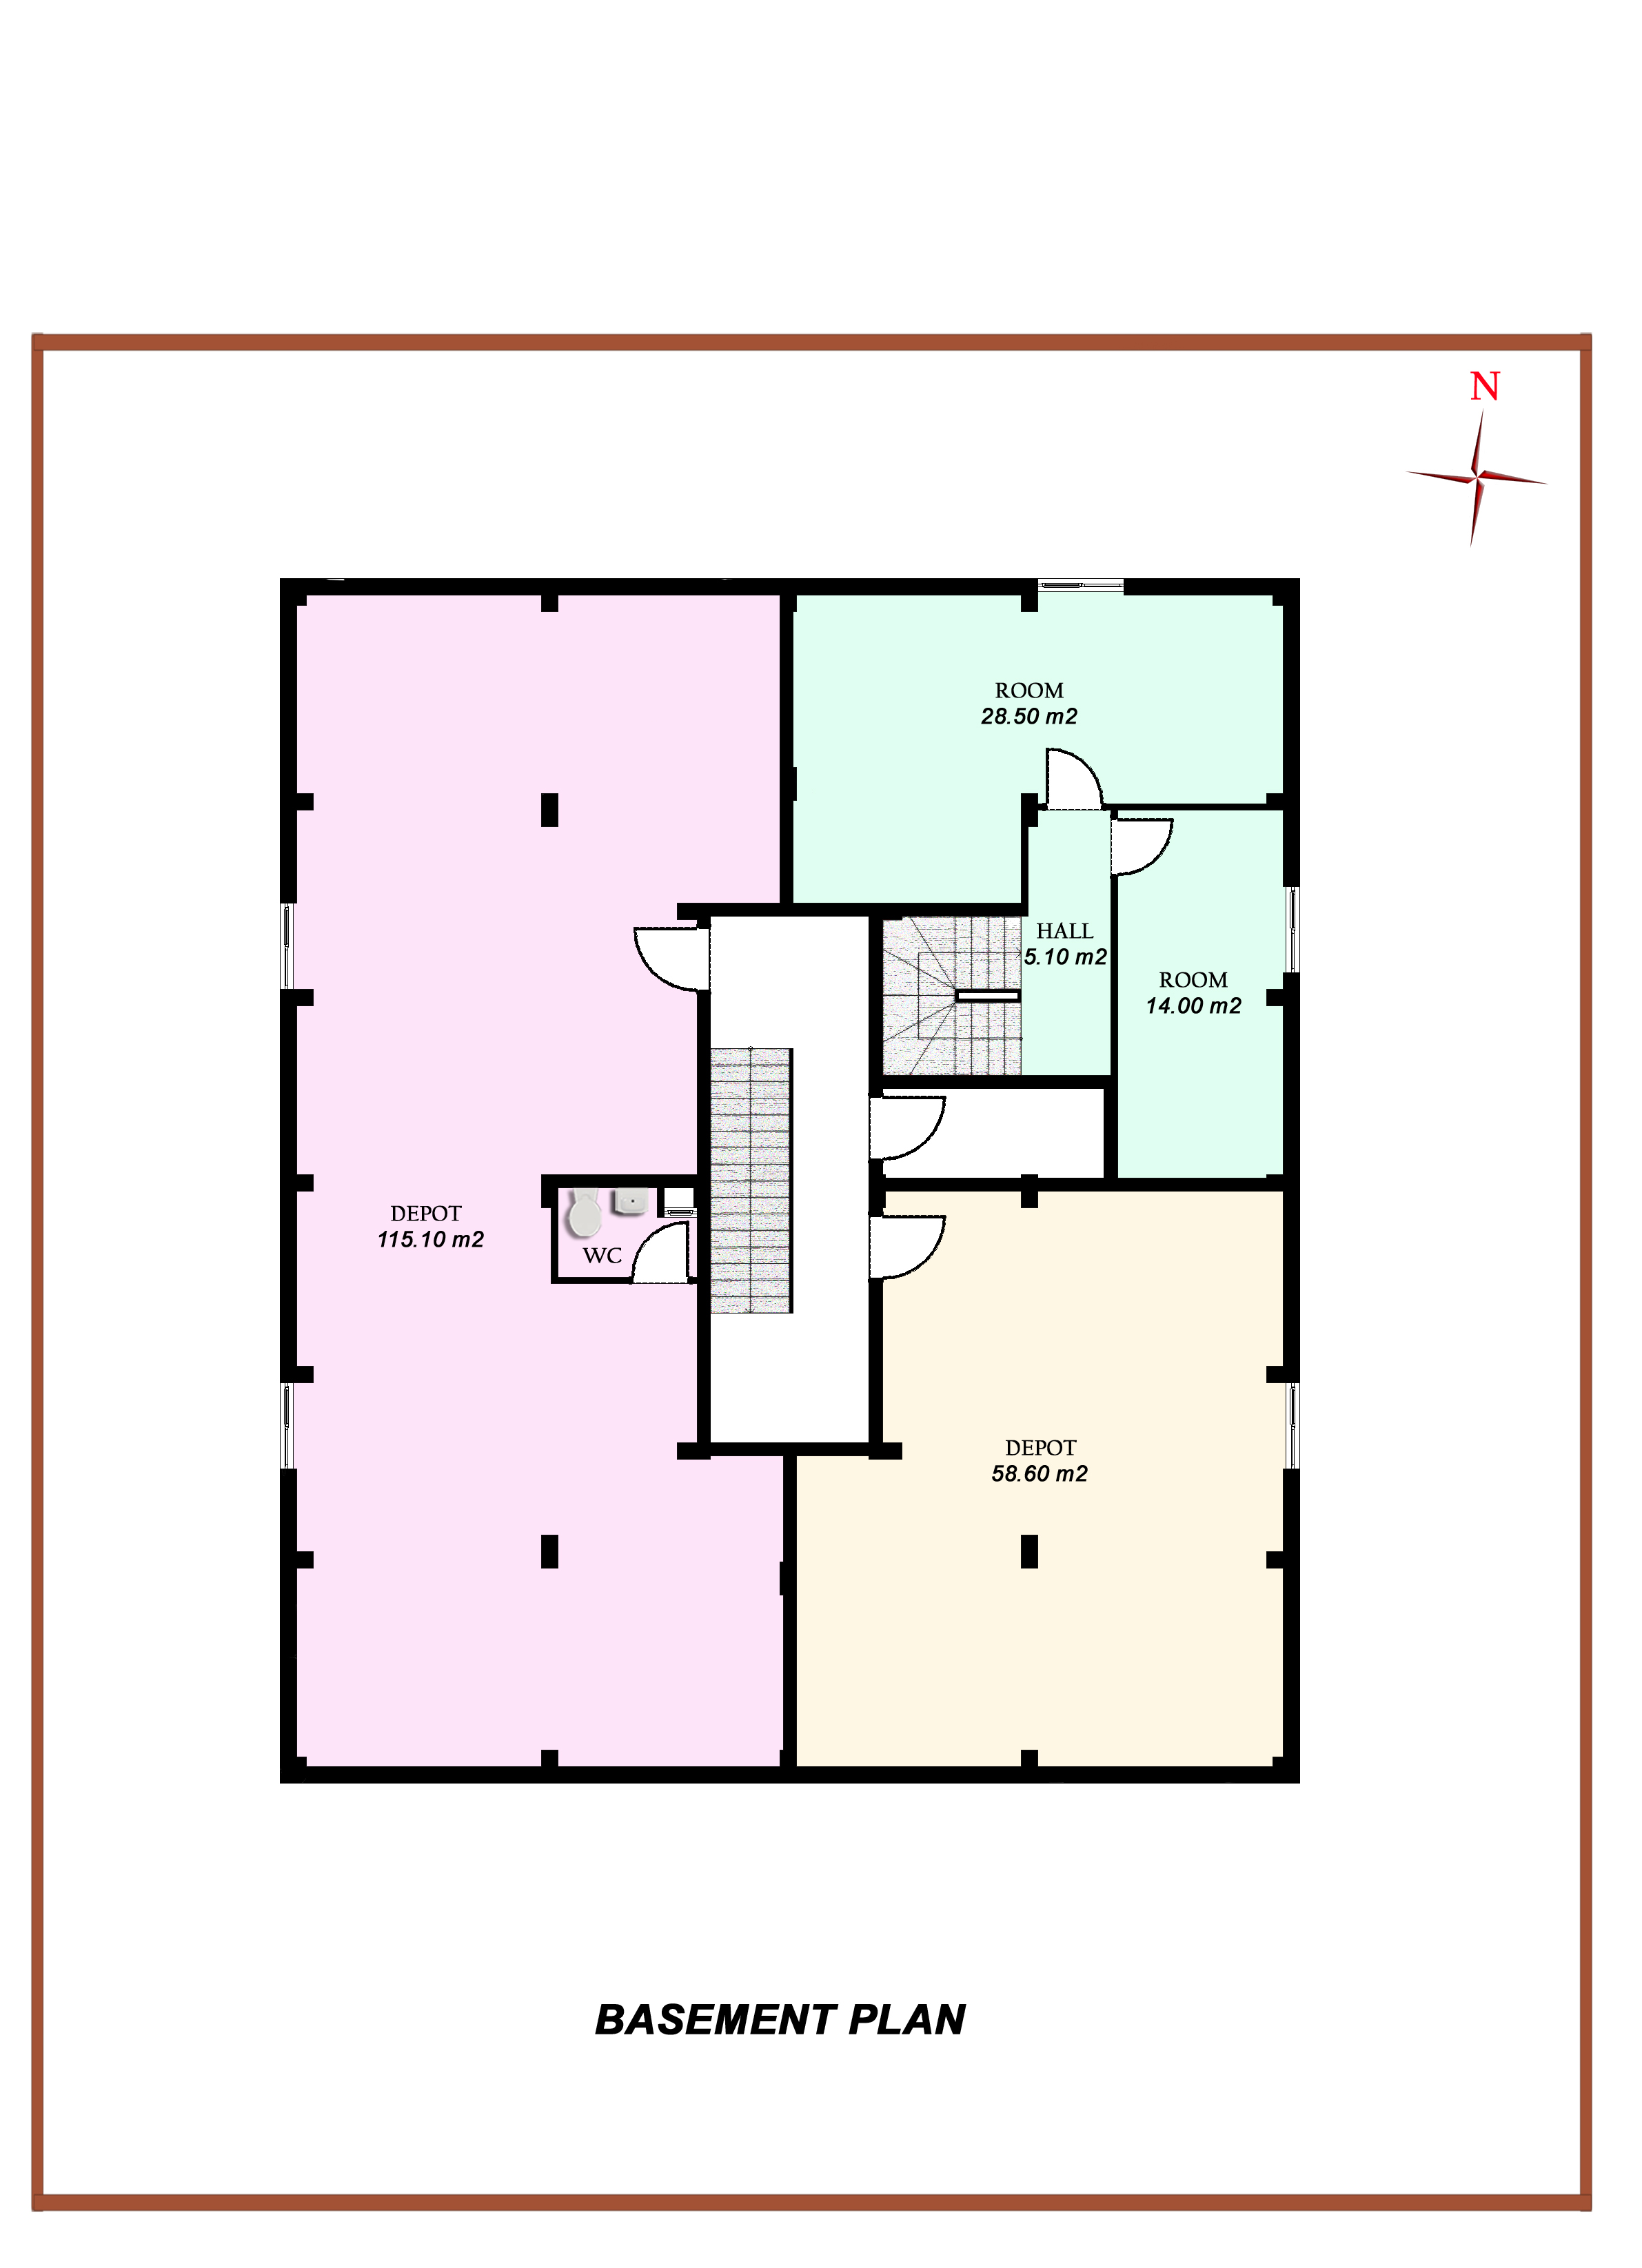 basement floor plans ideas free photo - 2